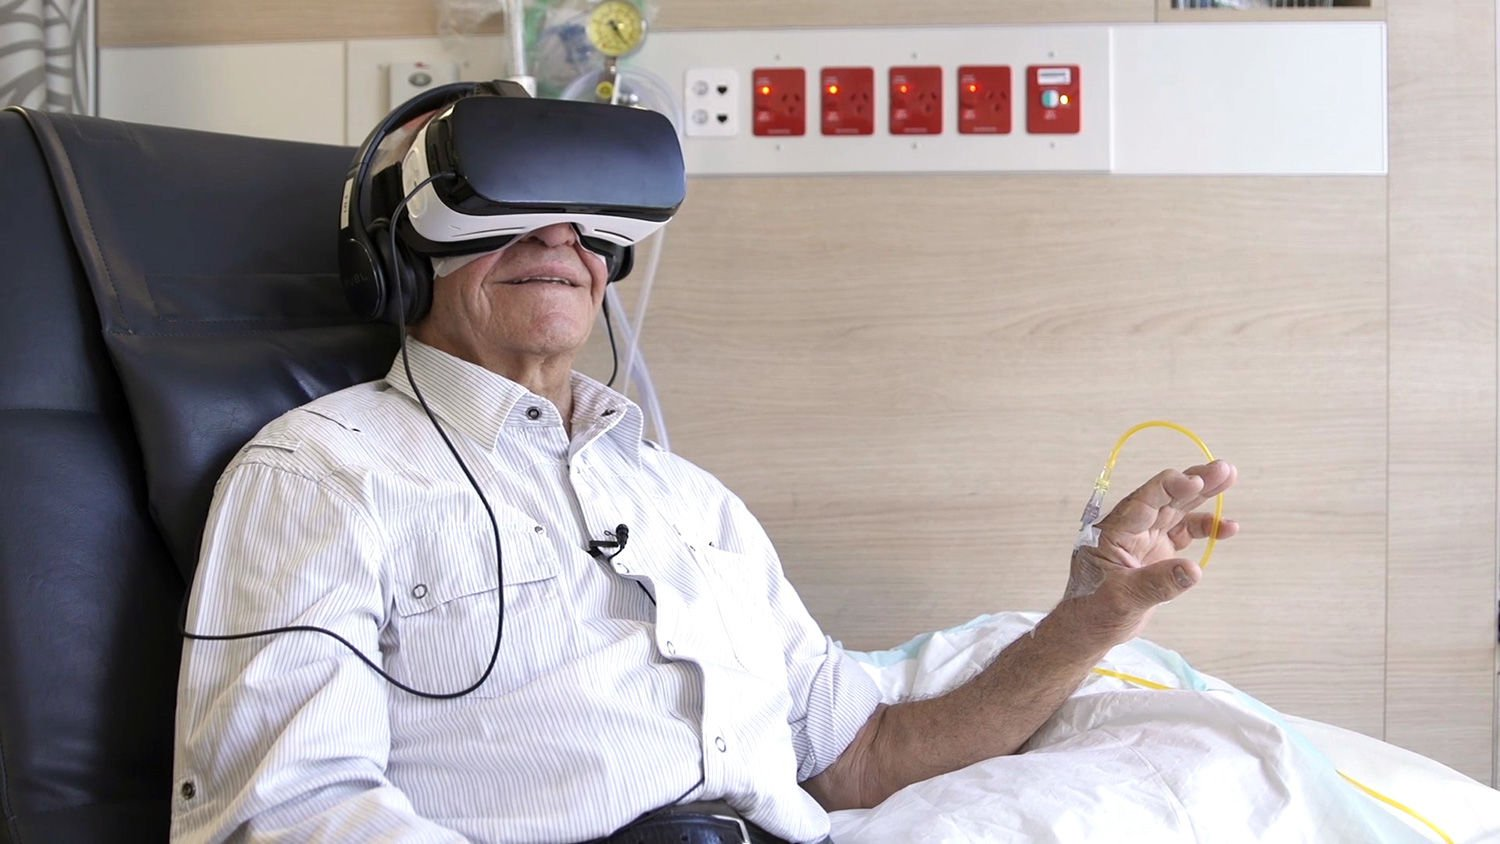 The field to which VR is most actively applied is posttraumatic stress disorder (PTSD).